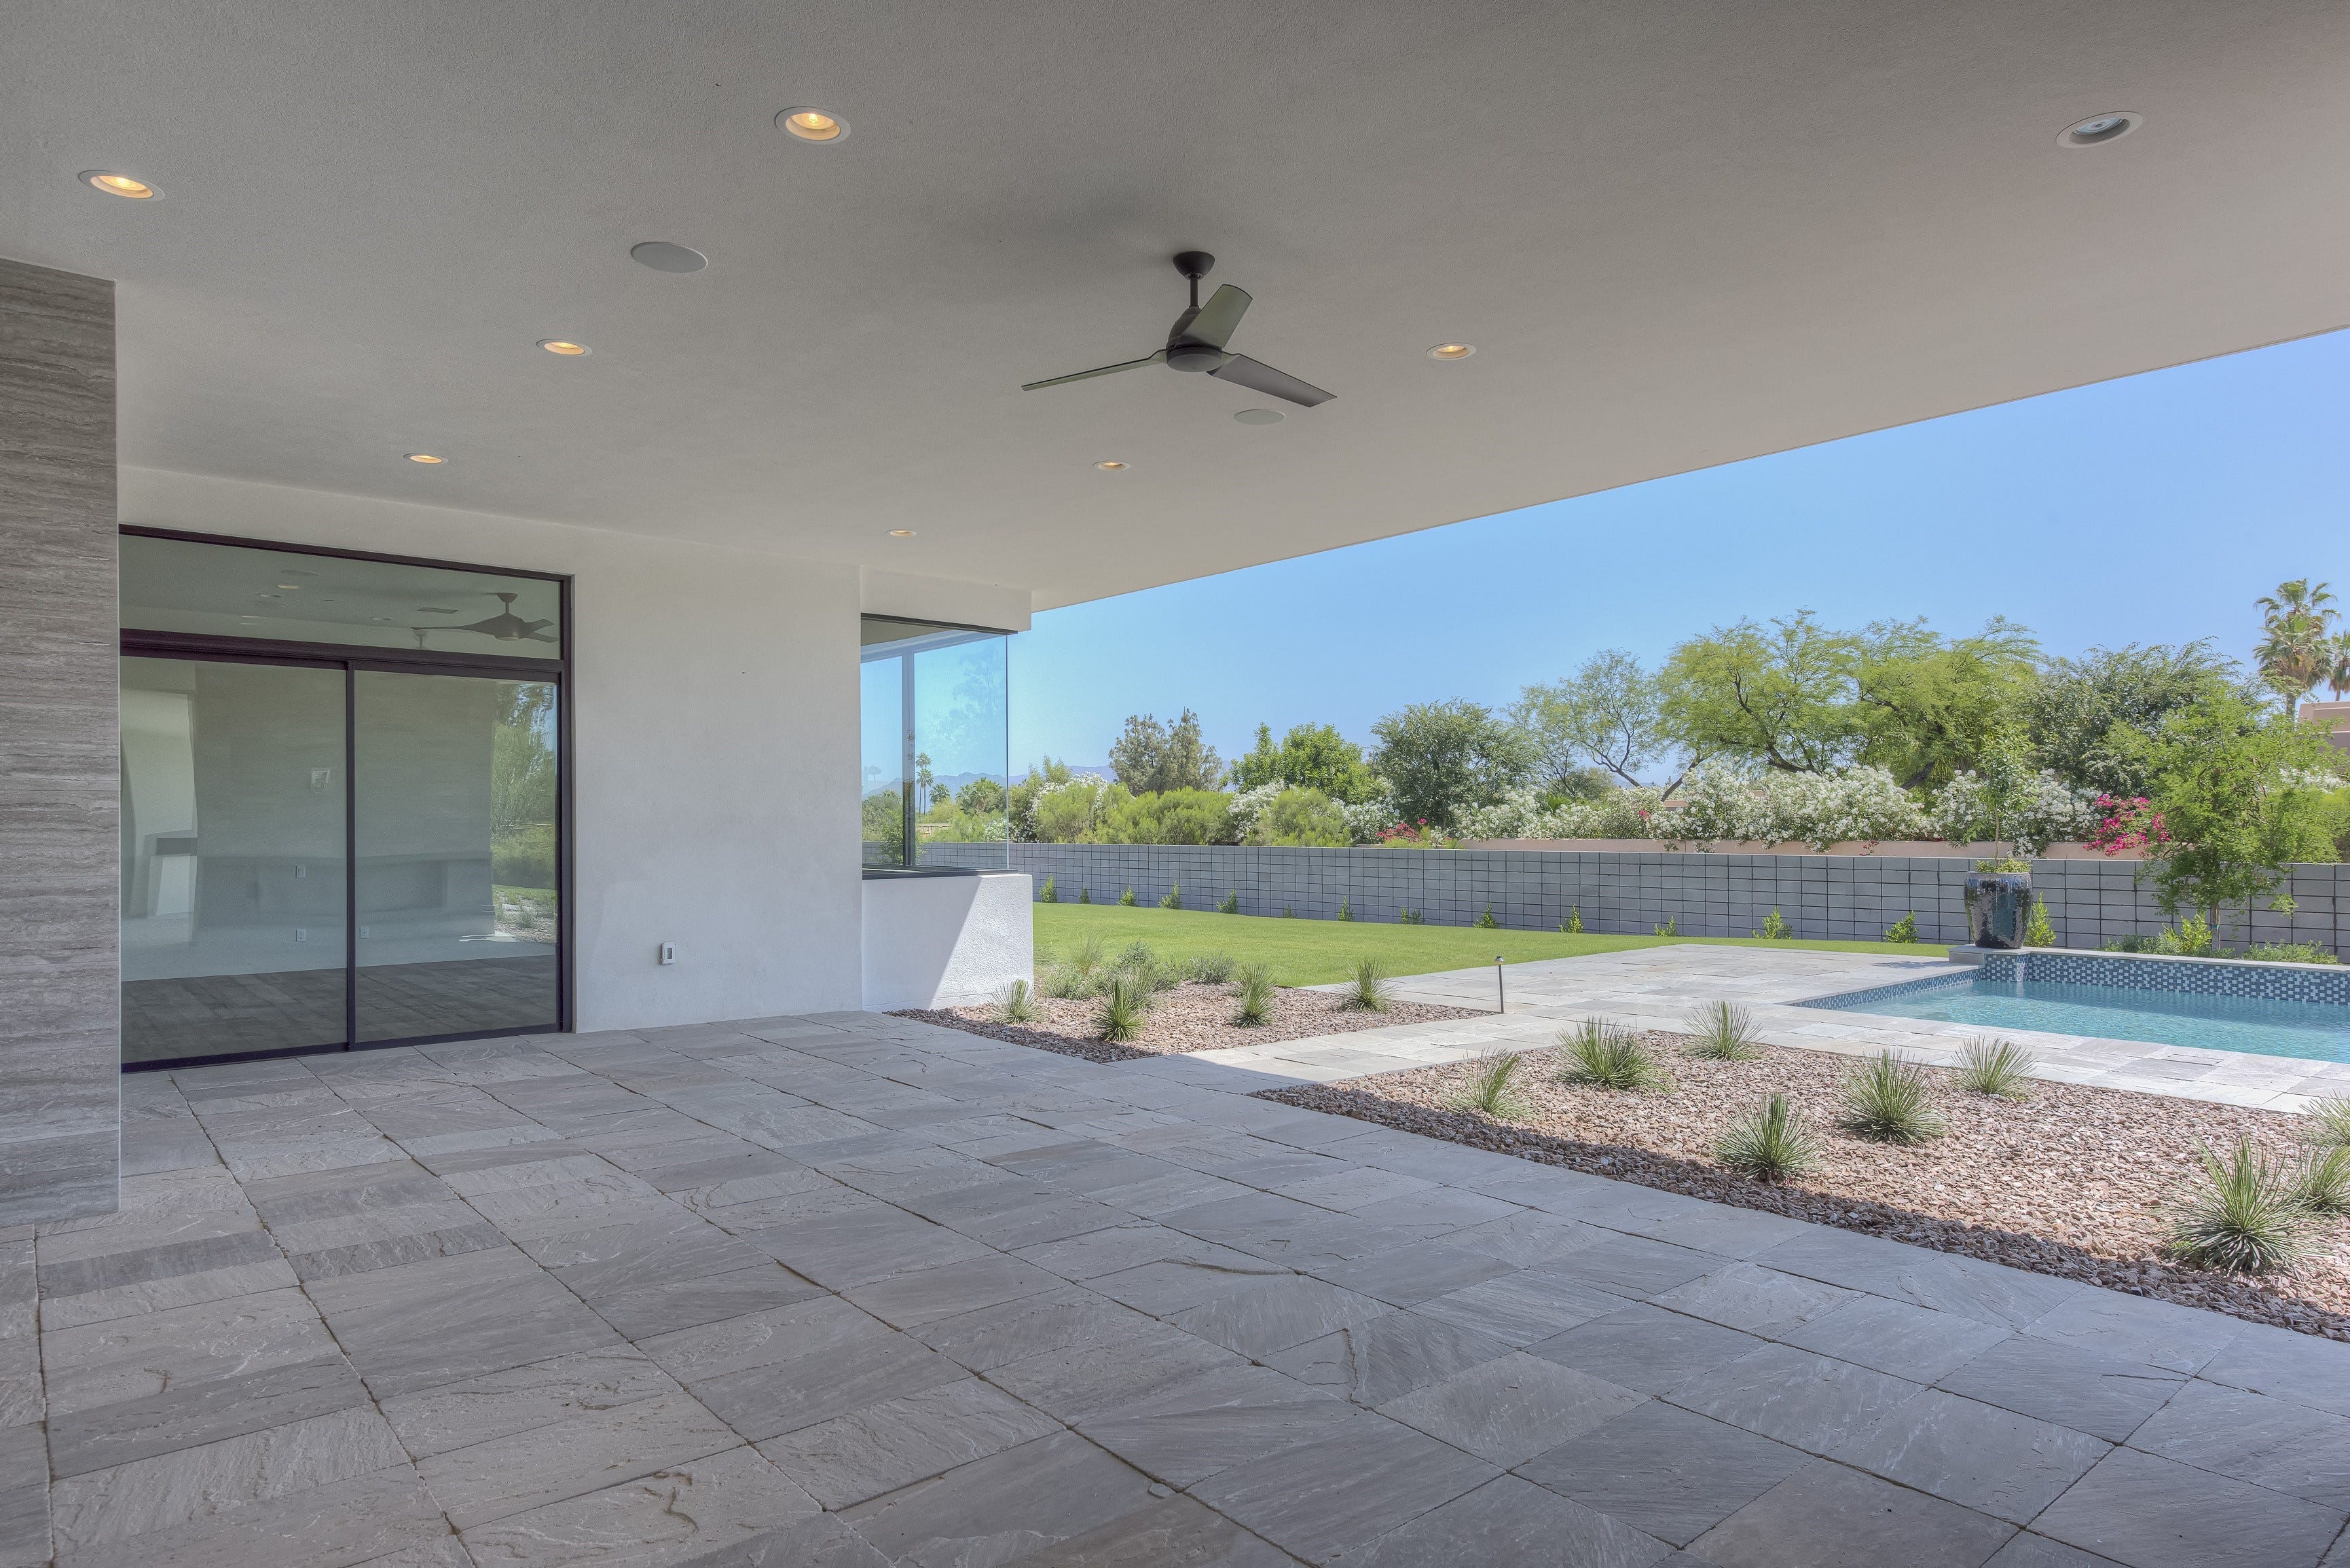 Luxury homes: Phoenix Suns guard buys $3.2M Paradise Valley home